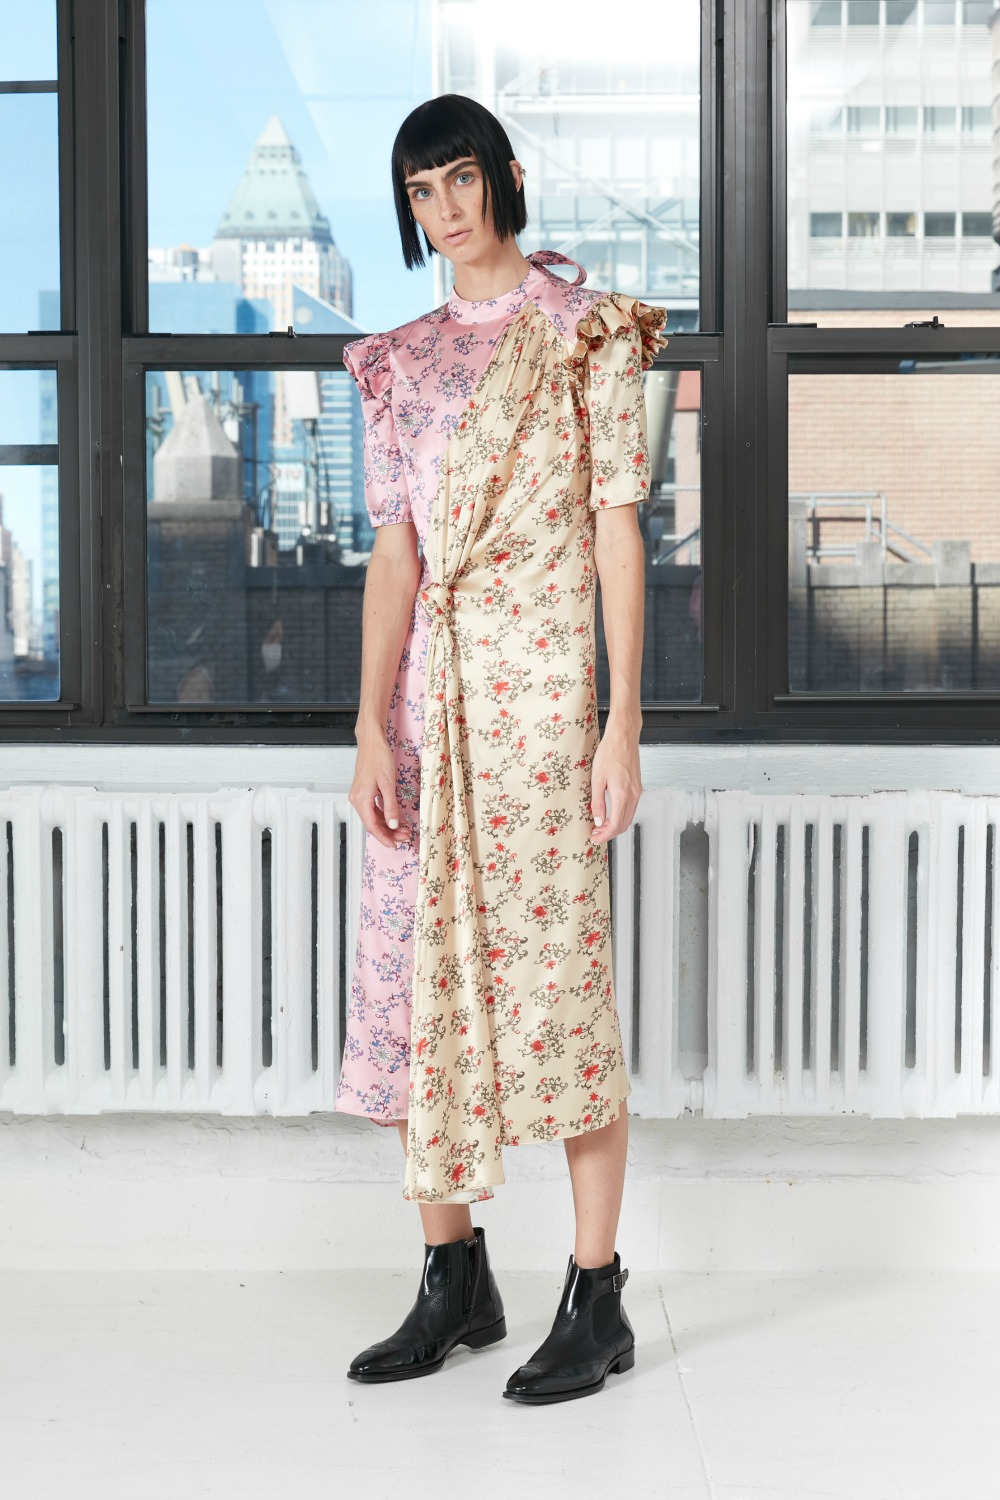 snow-xue-gao-spring-2021-collection-virtual-fashion-week-blog-dreaminlace-look-19